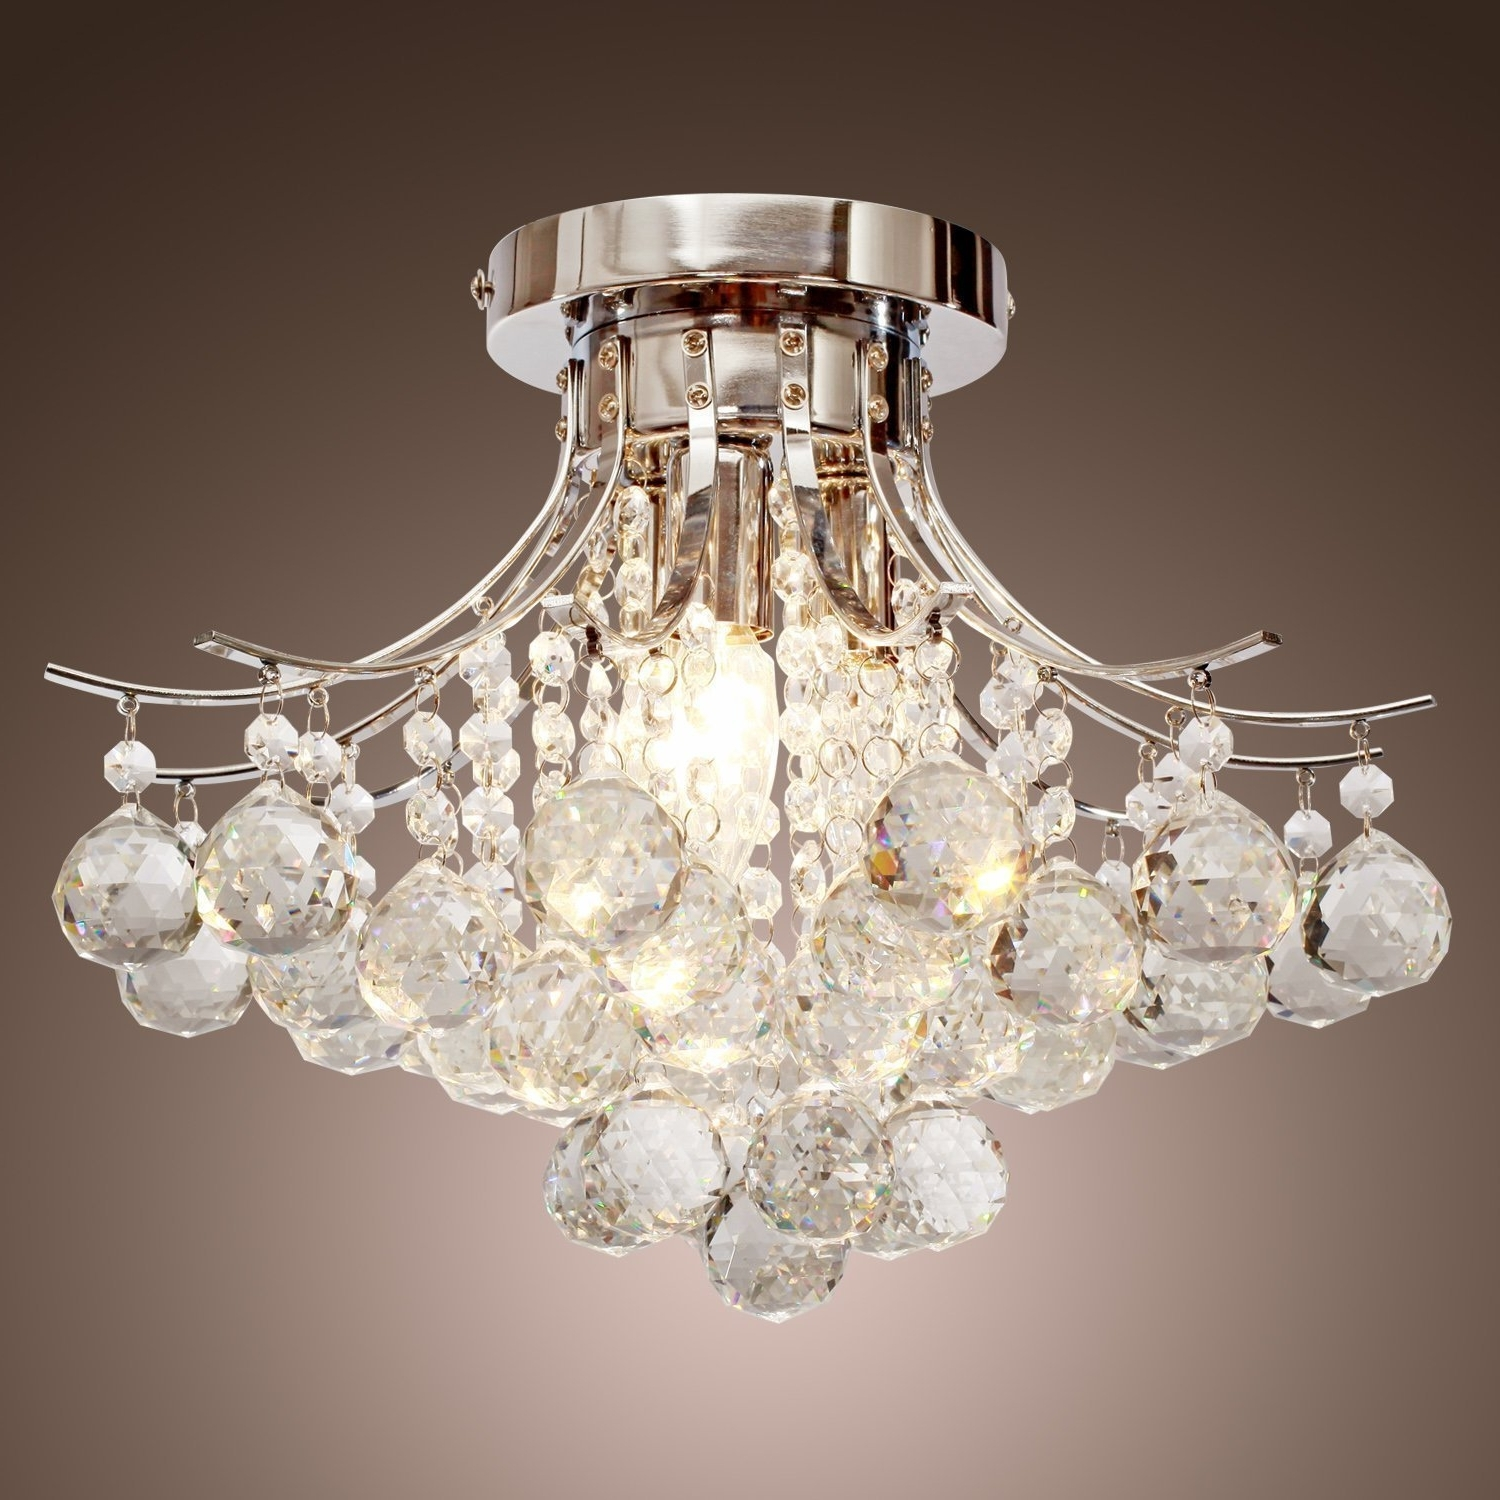 Latest Light : Living Room Ceiling Lights Close To Flush Mount Lighting Within Wall Mount Crystal Chandeliers (View 6 of 15)